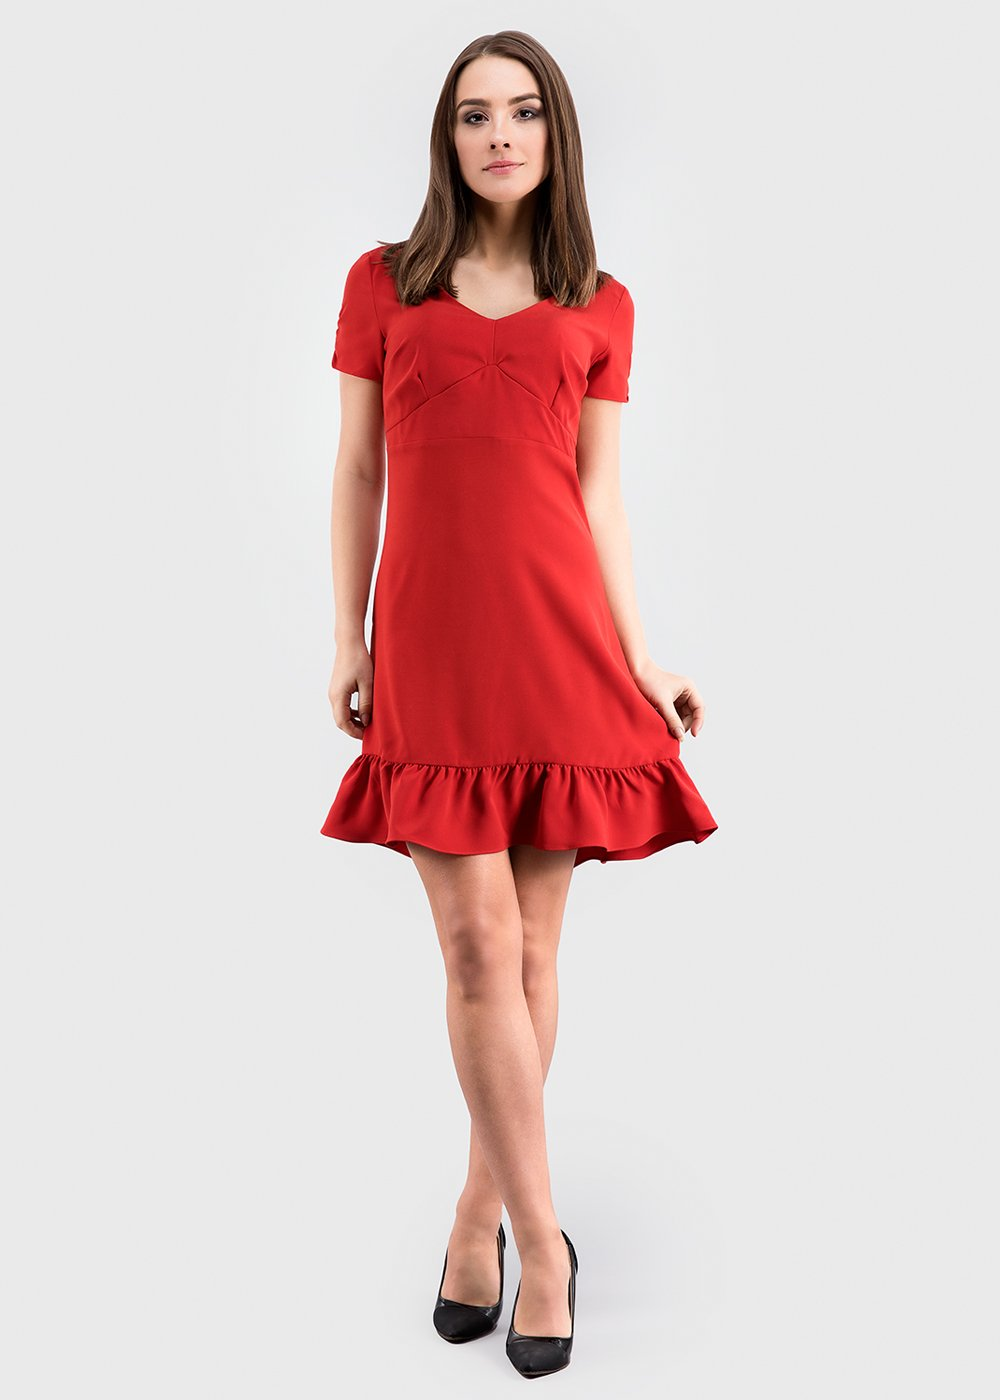 GFLOCK - [product_sku] - Women_Dresses - Short Sleeve Frill Hem Dress